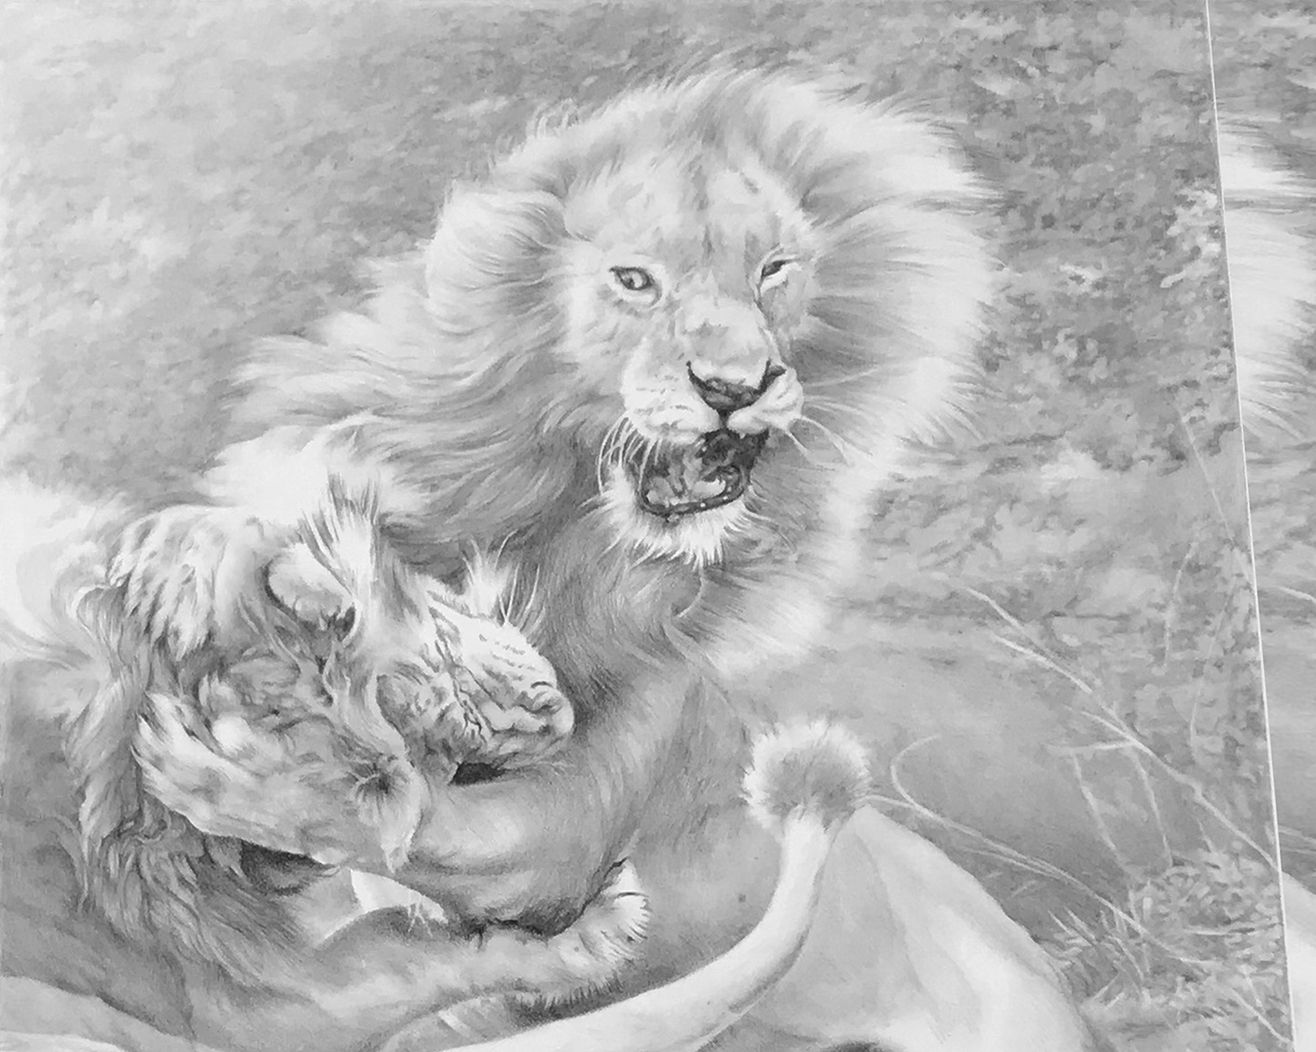 detail view of two lions fighting